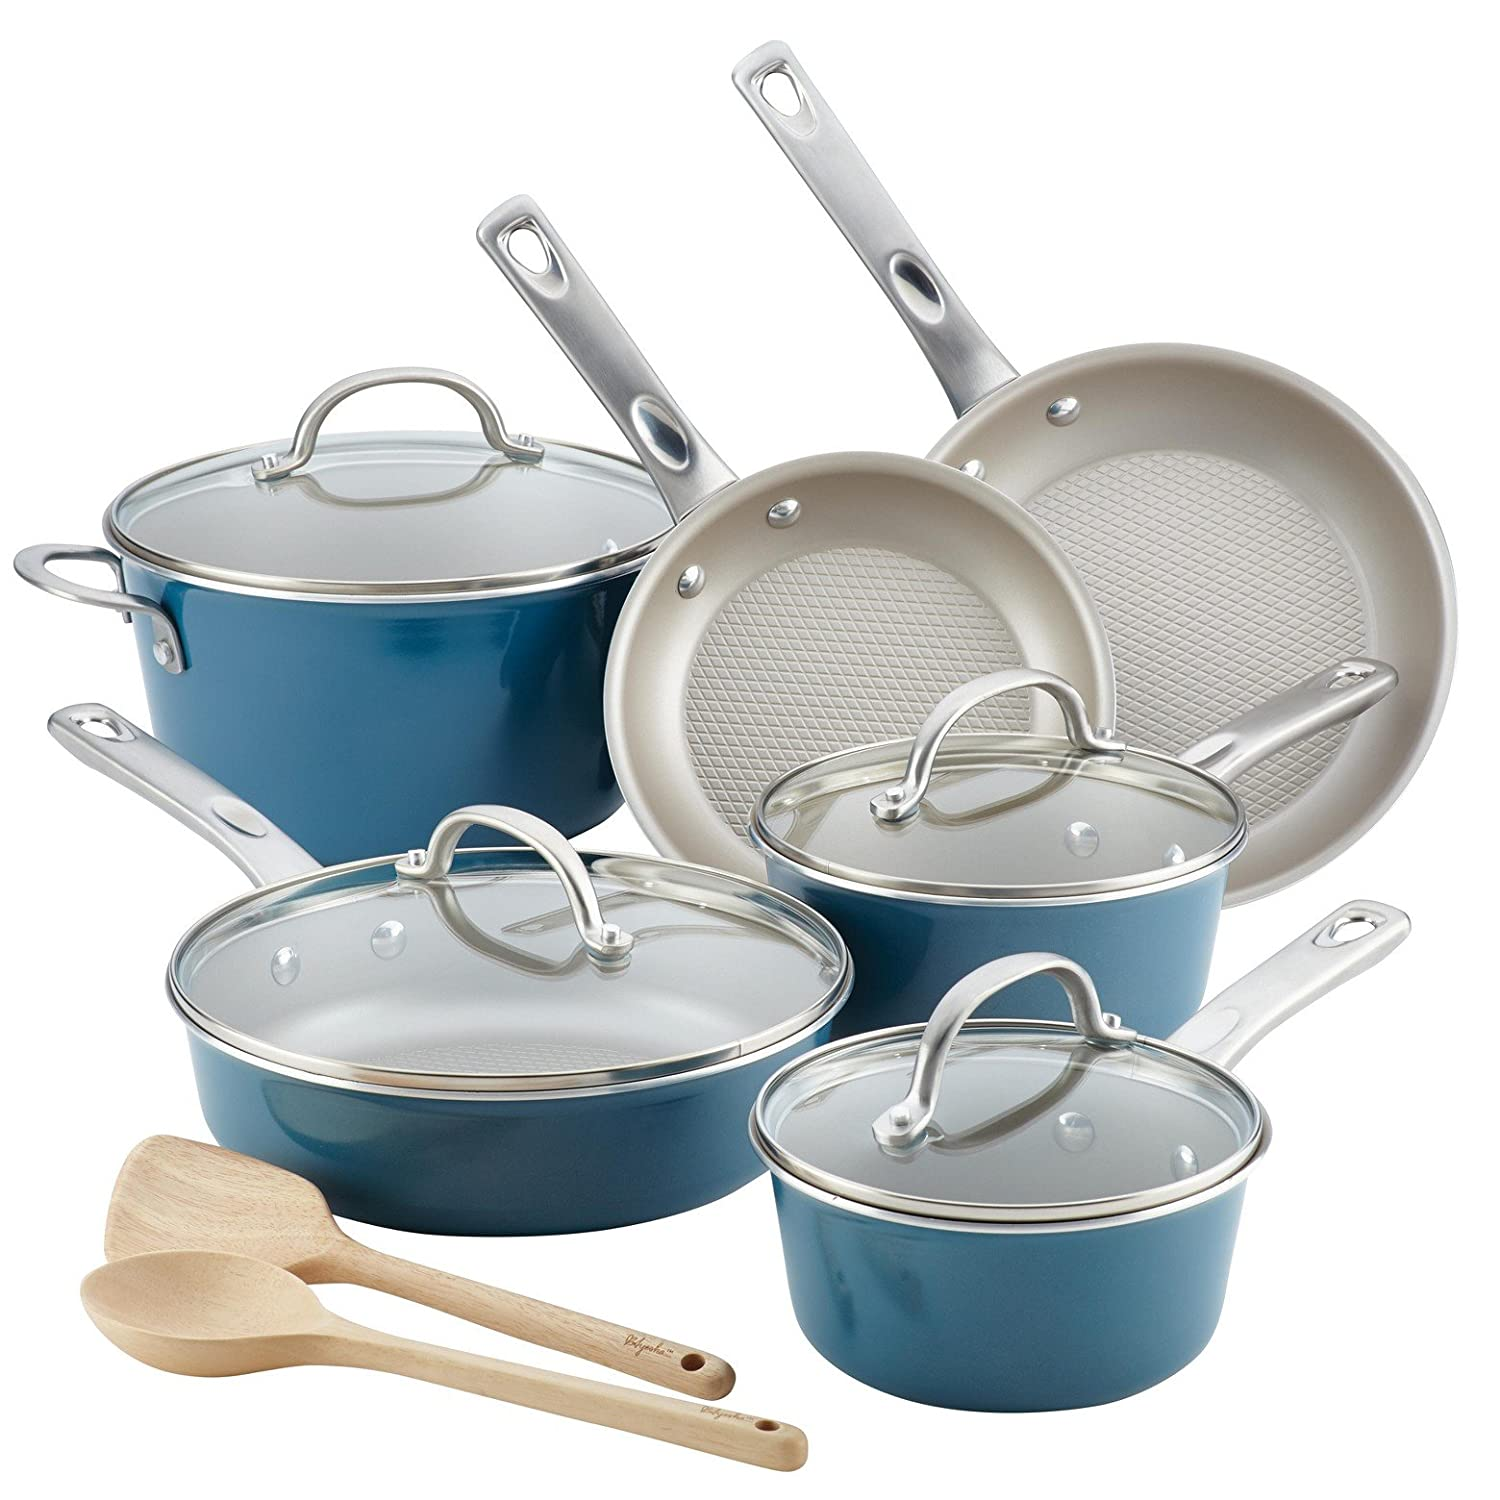 Amazon.com: Ayesha Curry 12pc Aluminum Cookware Set: Electronics